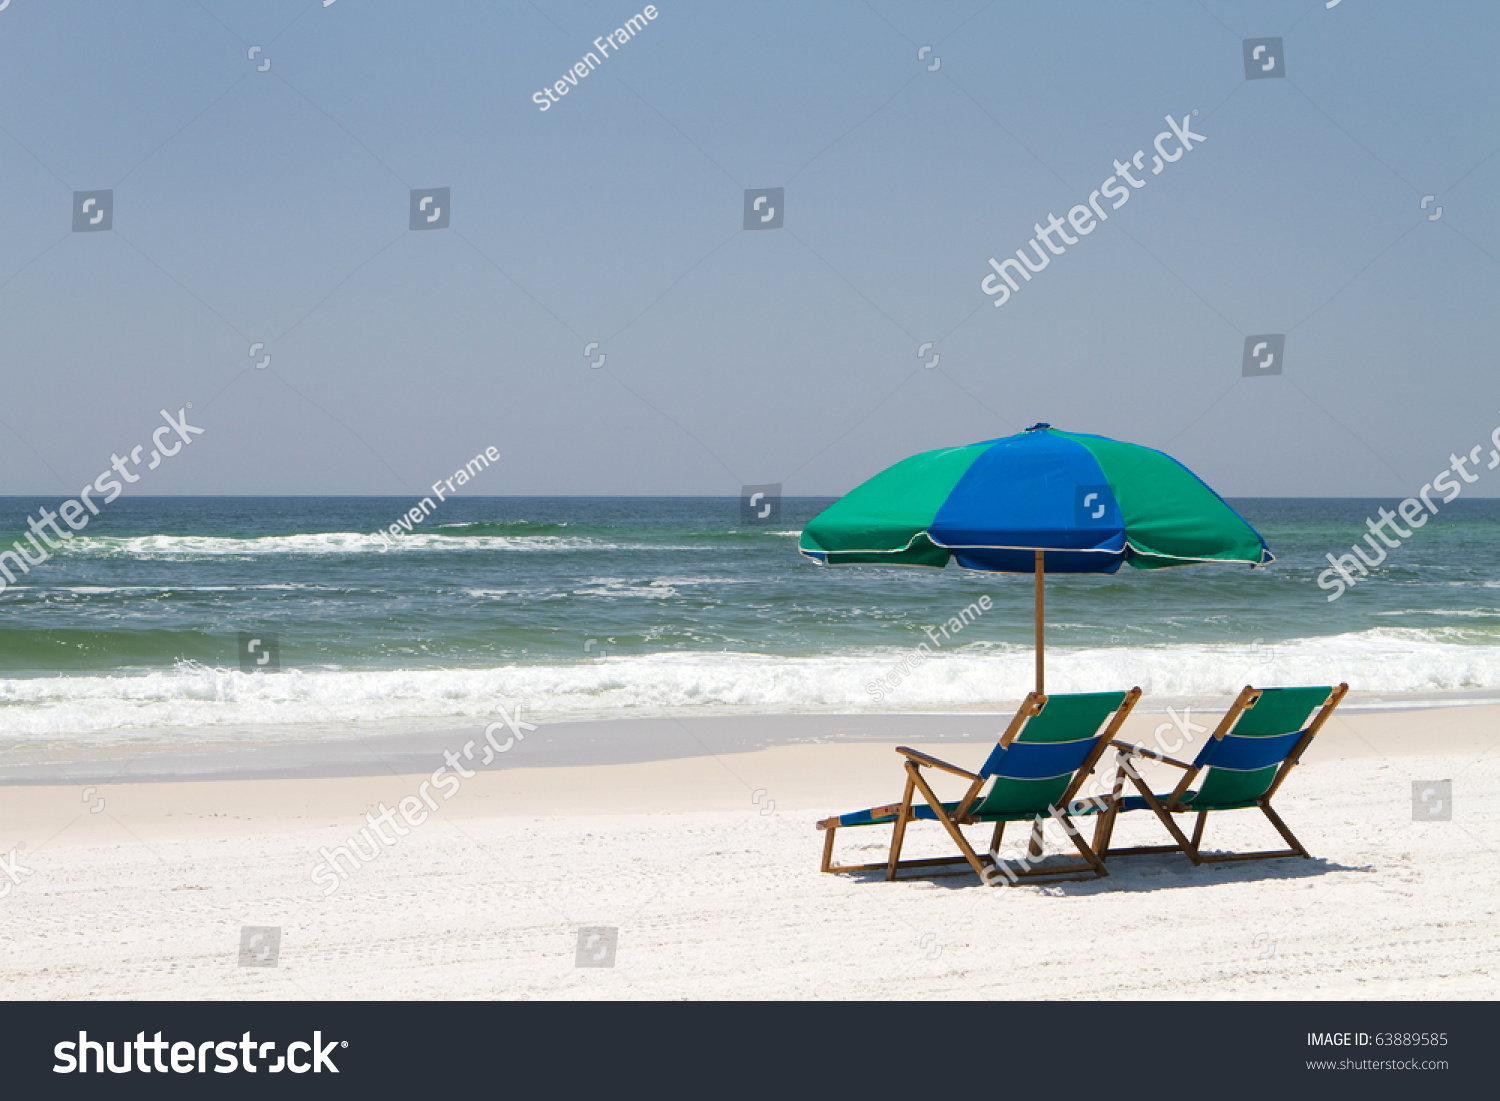 Two Beach Chairs Umbrella Sit On Stock Photo (Royalty Free) 63889585    Shutterstock